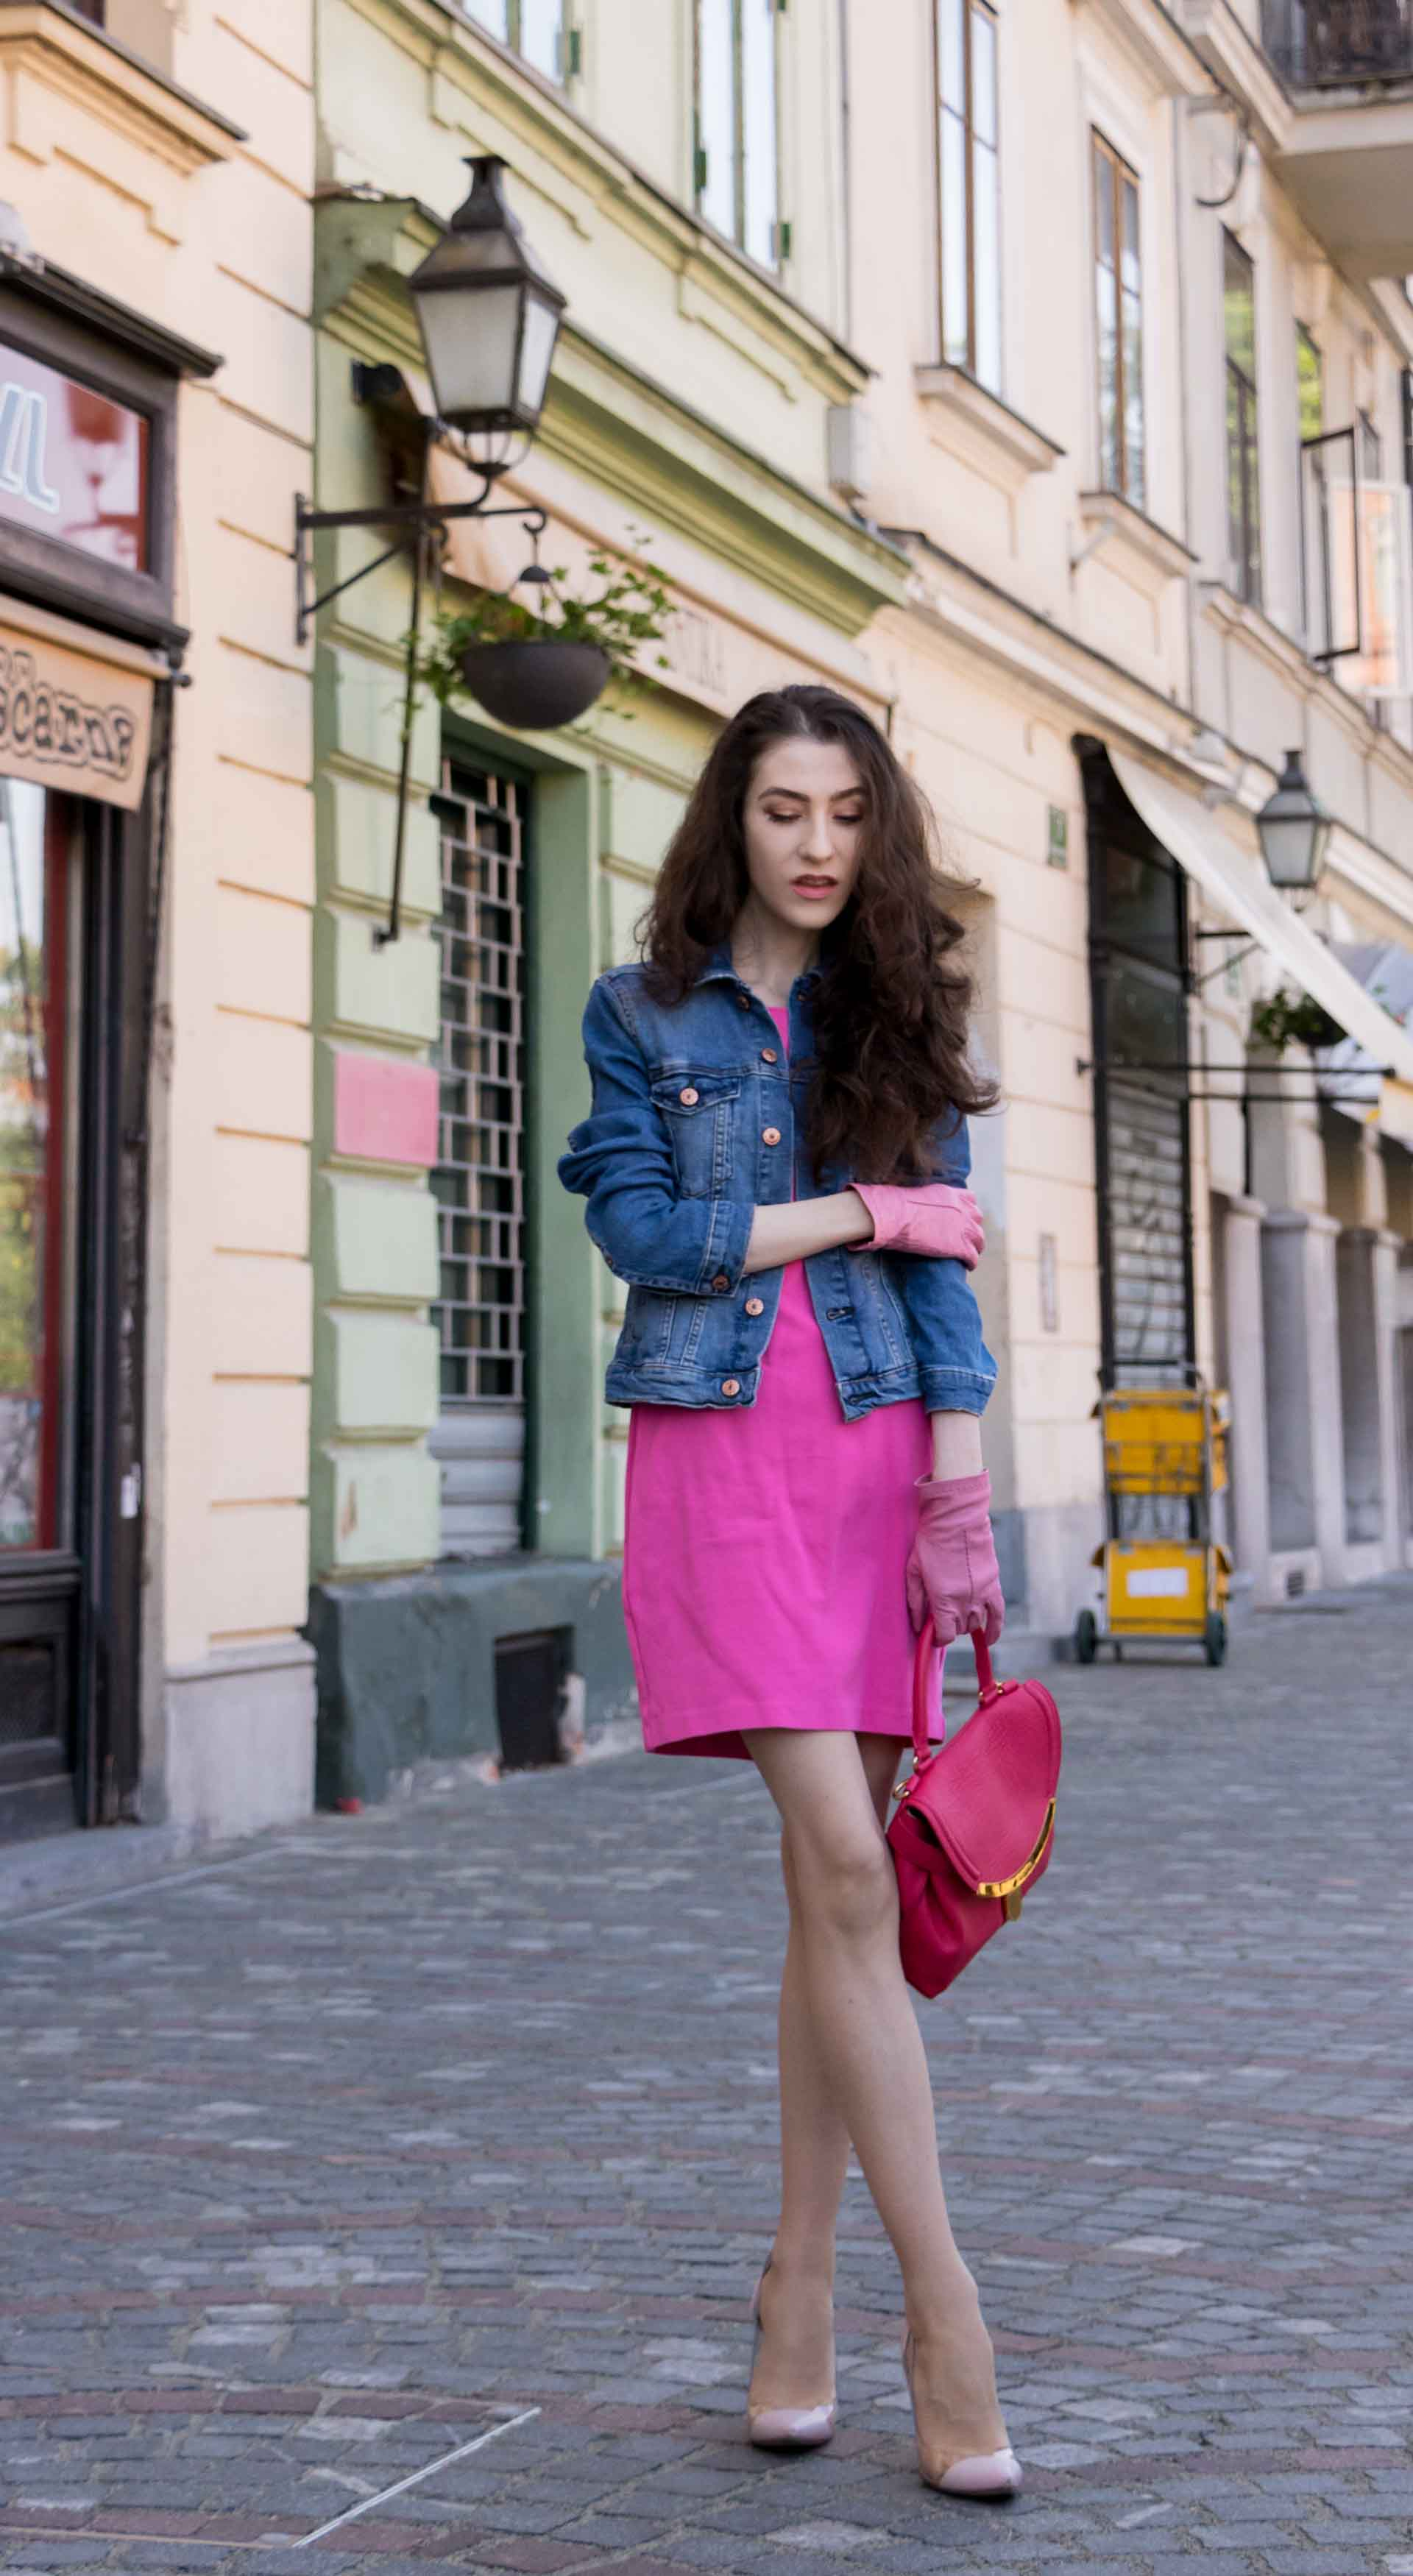 Veronika Lipar Fashion Blogger of Brunette from Wall Street dressed in H&M denim jacket, pink cocktail dress, blush Gianvito Rossi plexi pumps, pink Forzieri gloves, See by Chloé pink top handle bag, Adam Selman x Le Specs white cat eye Lolita sunglasses while standing on the street in Ljubljana